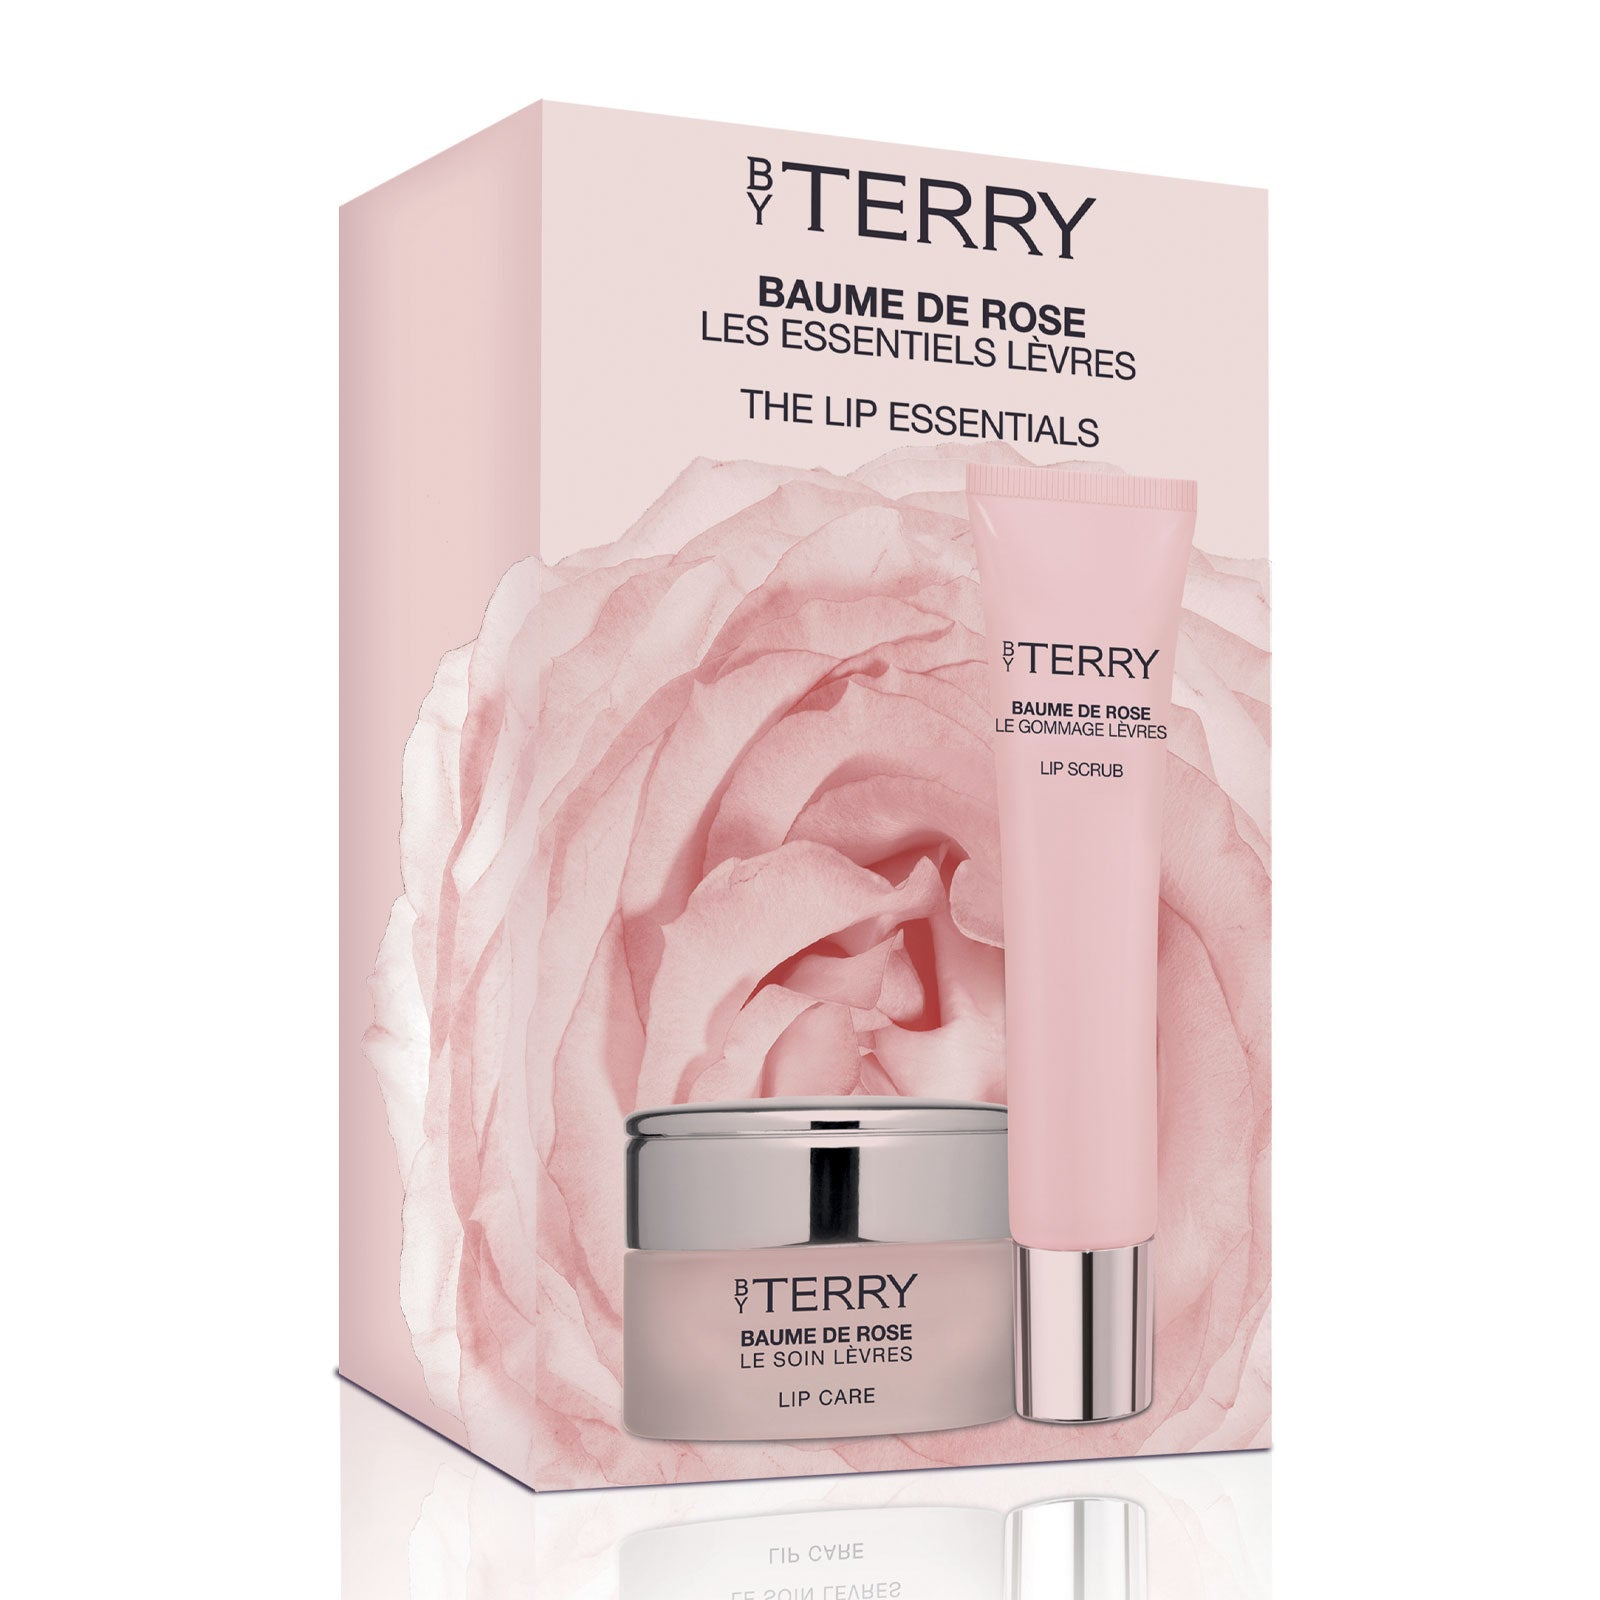 BY TERRY Baume de Rose Lip Essentials Set